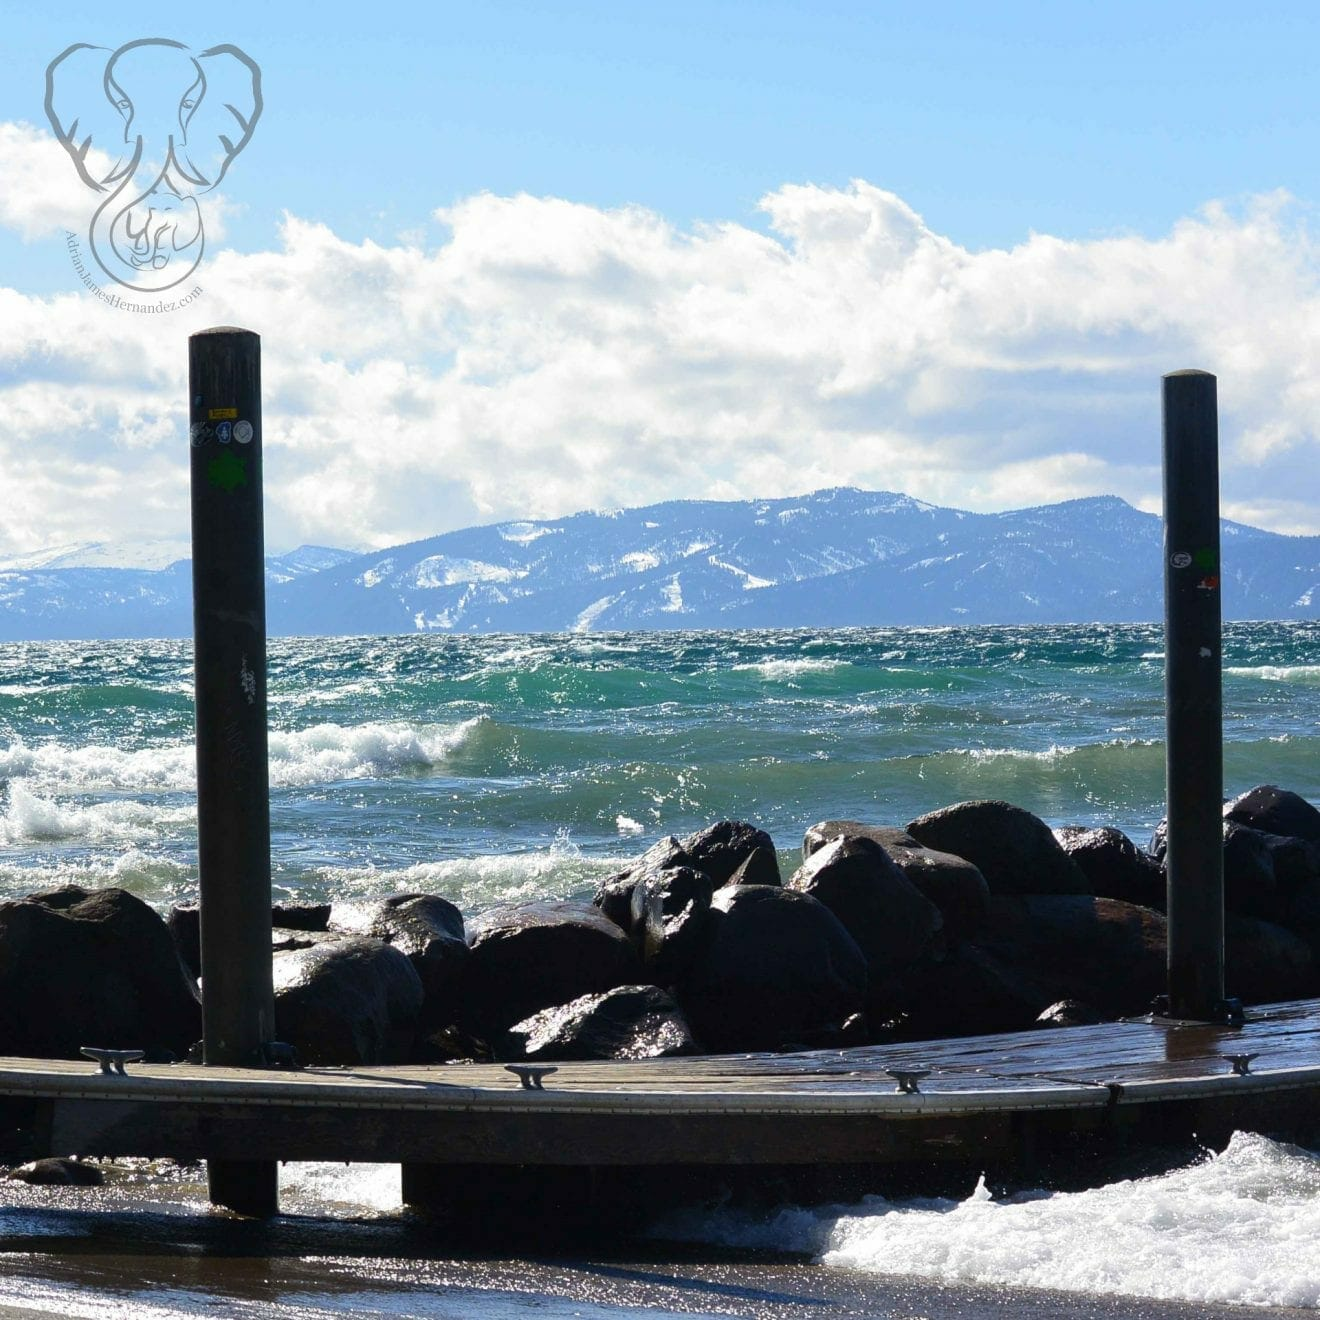 Waves on Lake Tahoe, California (Miranda Hernandez)